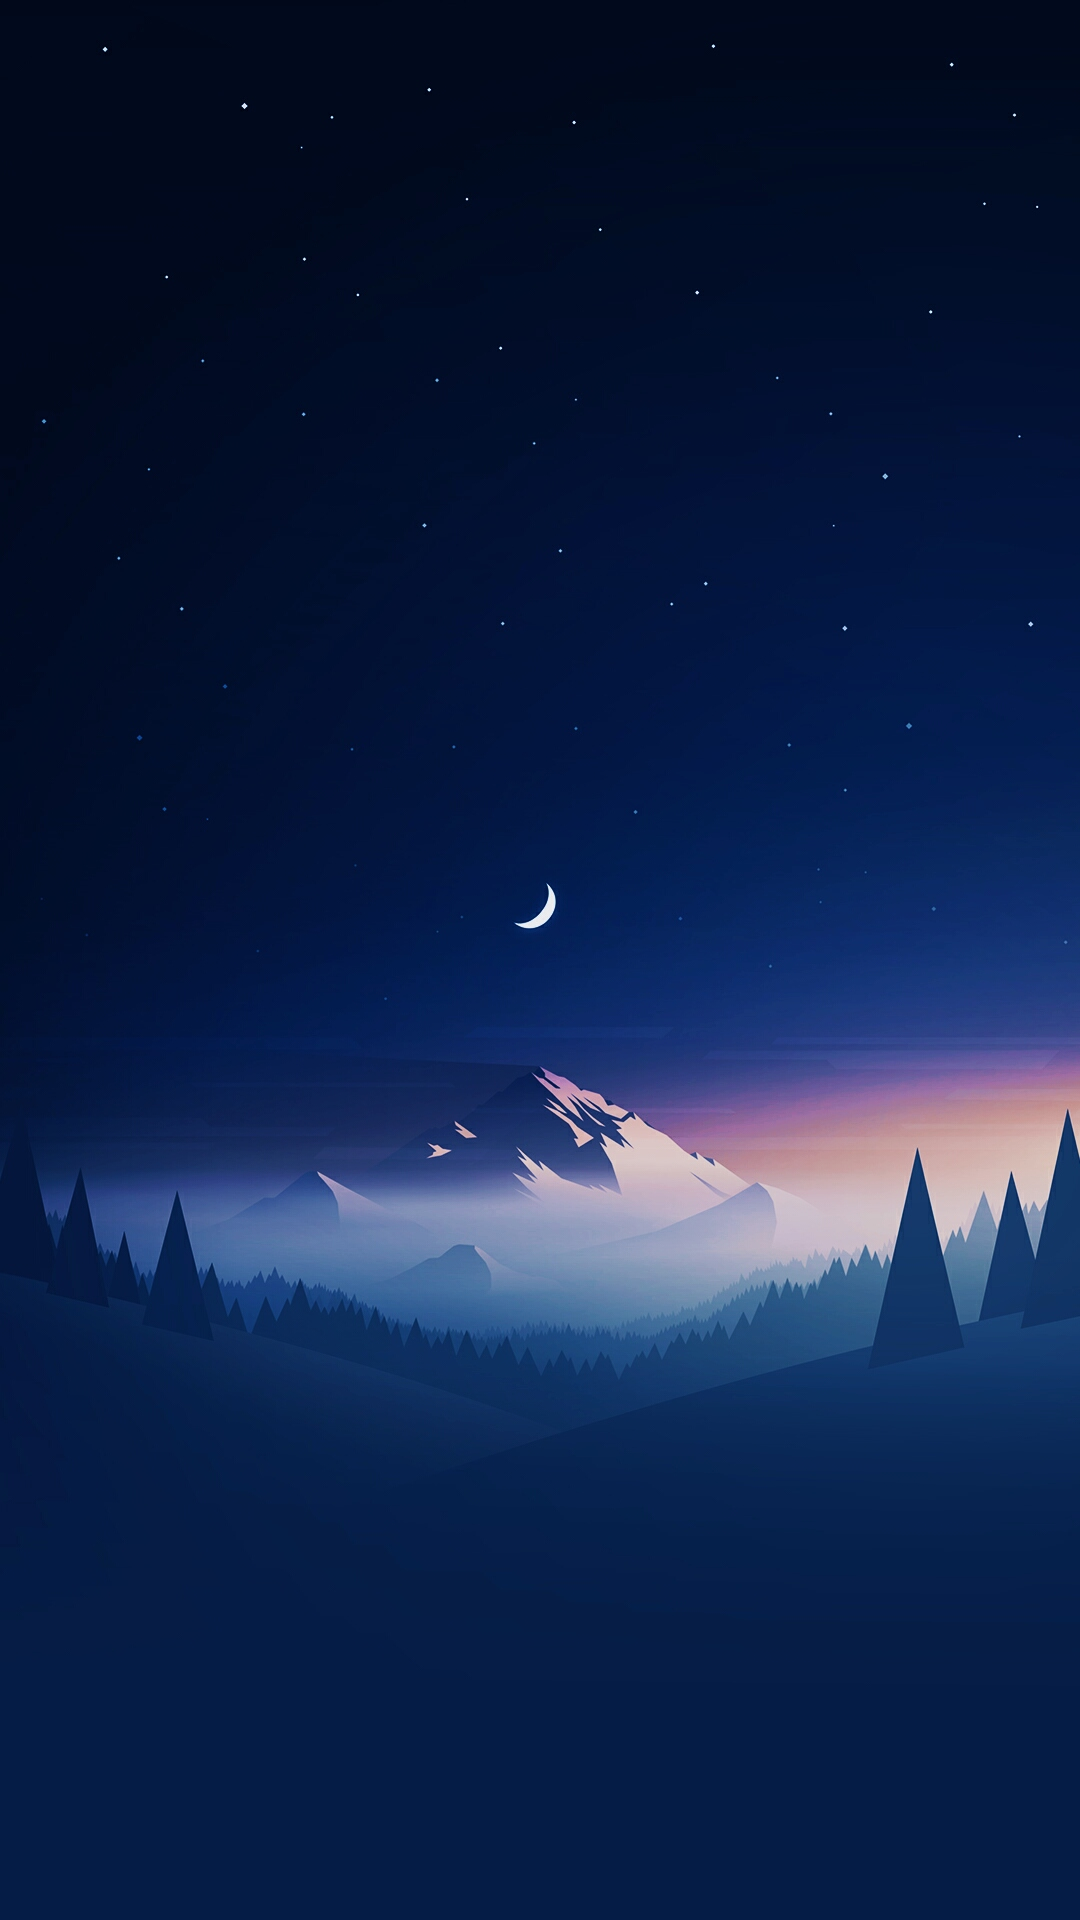 S8 Wallpaper HD Wallpapers [1080x1920